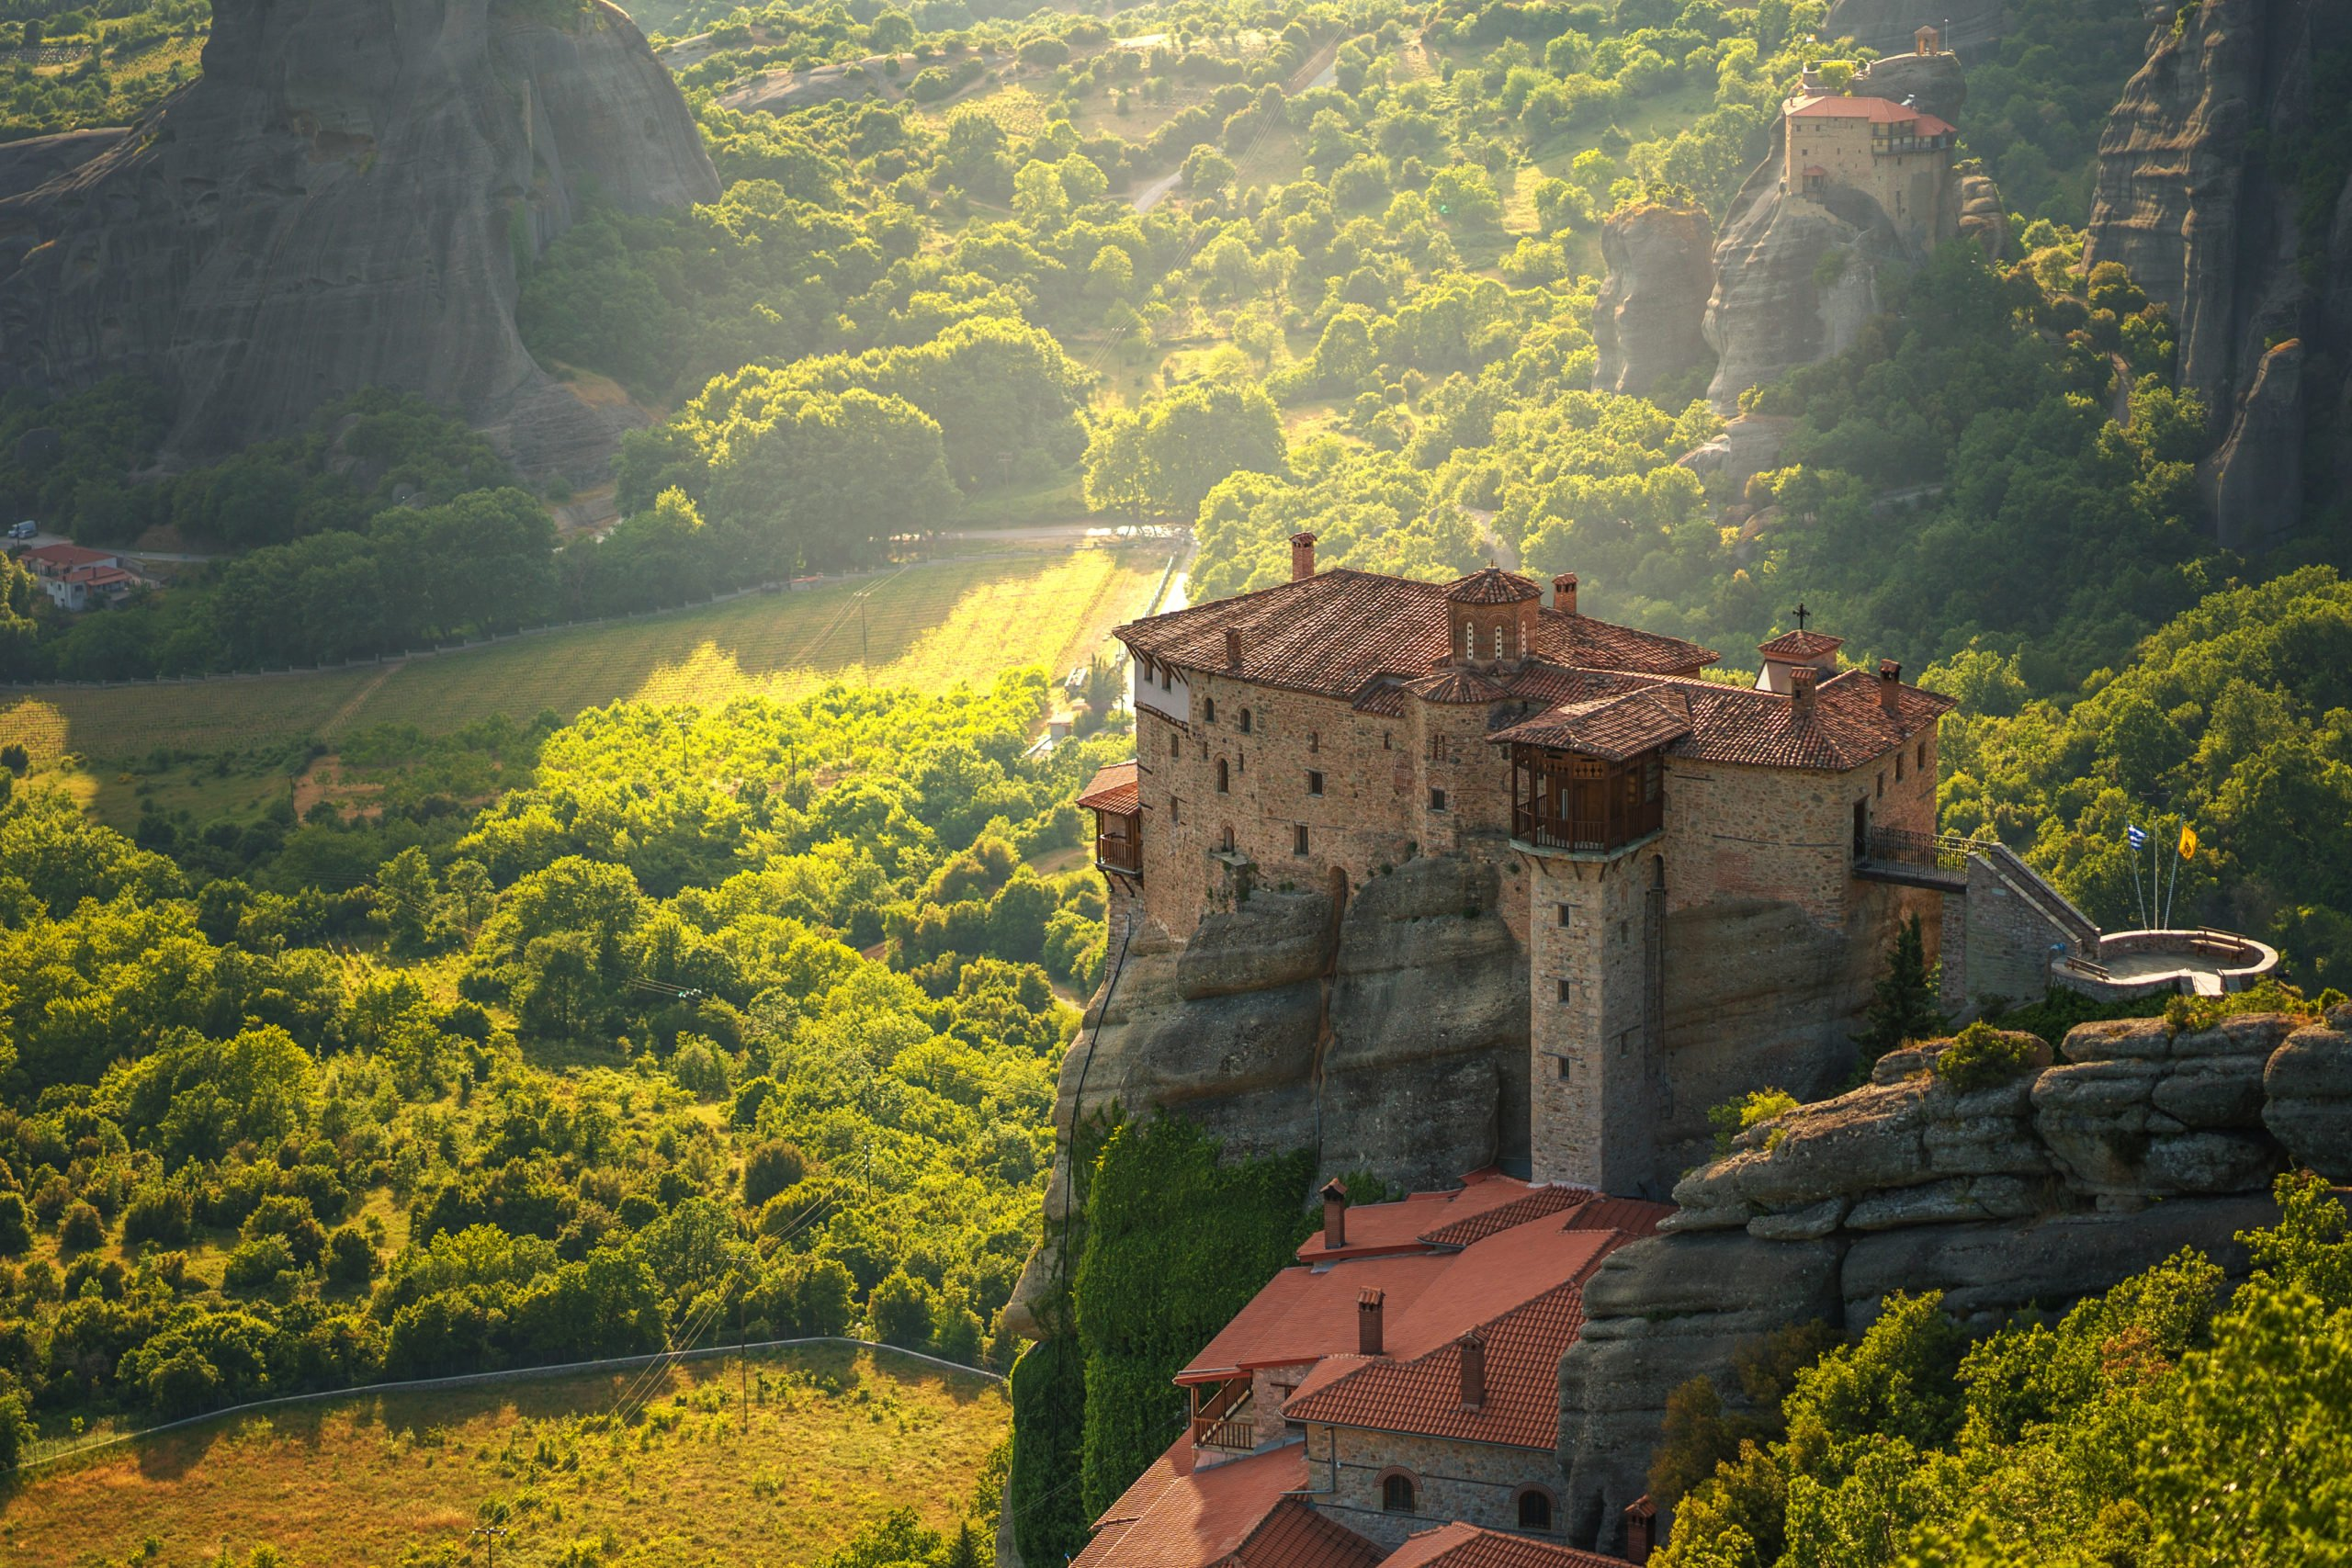 Dive Into The Rich History Of This Legendray Place During The 3 Days In The Footsteps Of The Meteora Monks Package Tour From Kalampaka